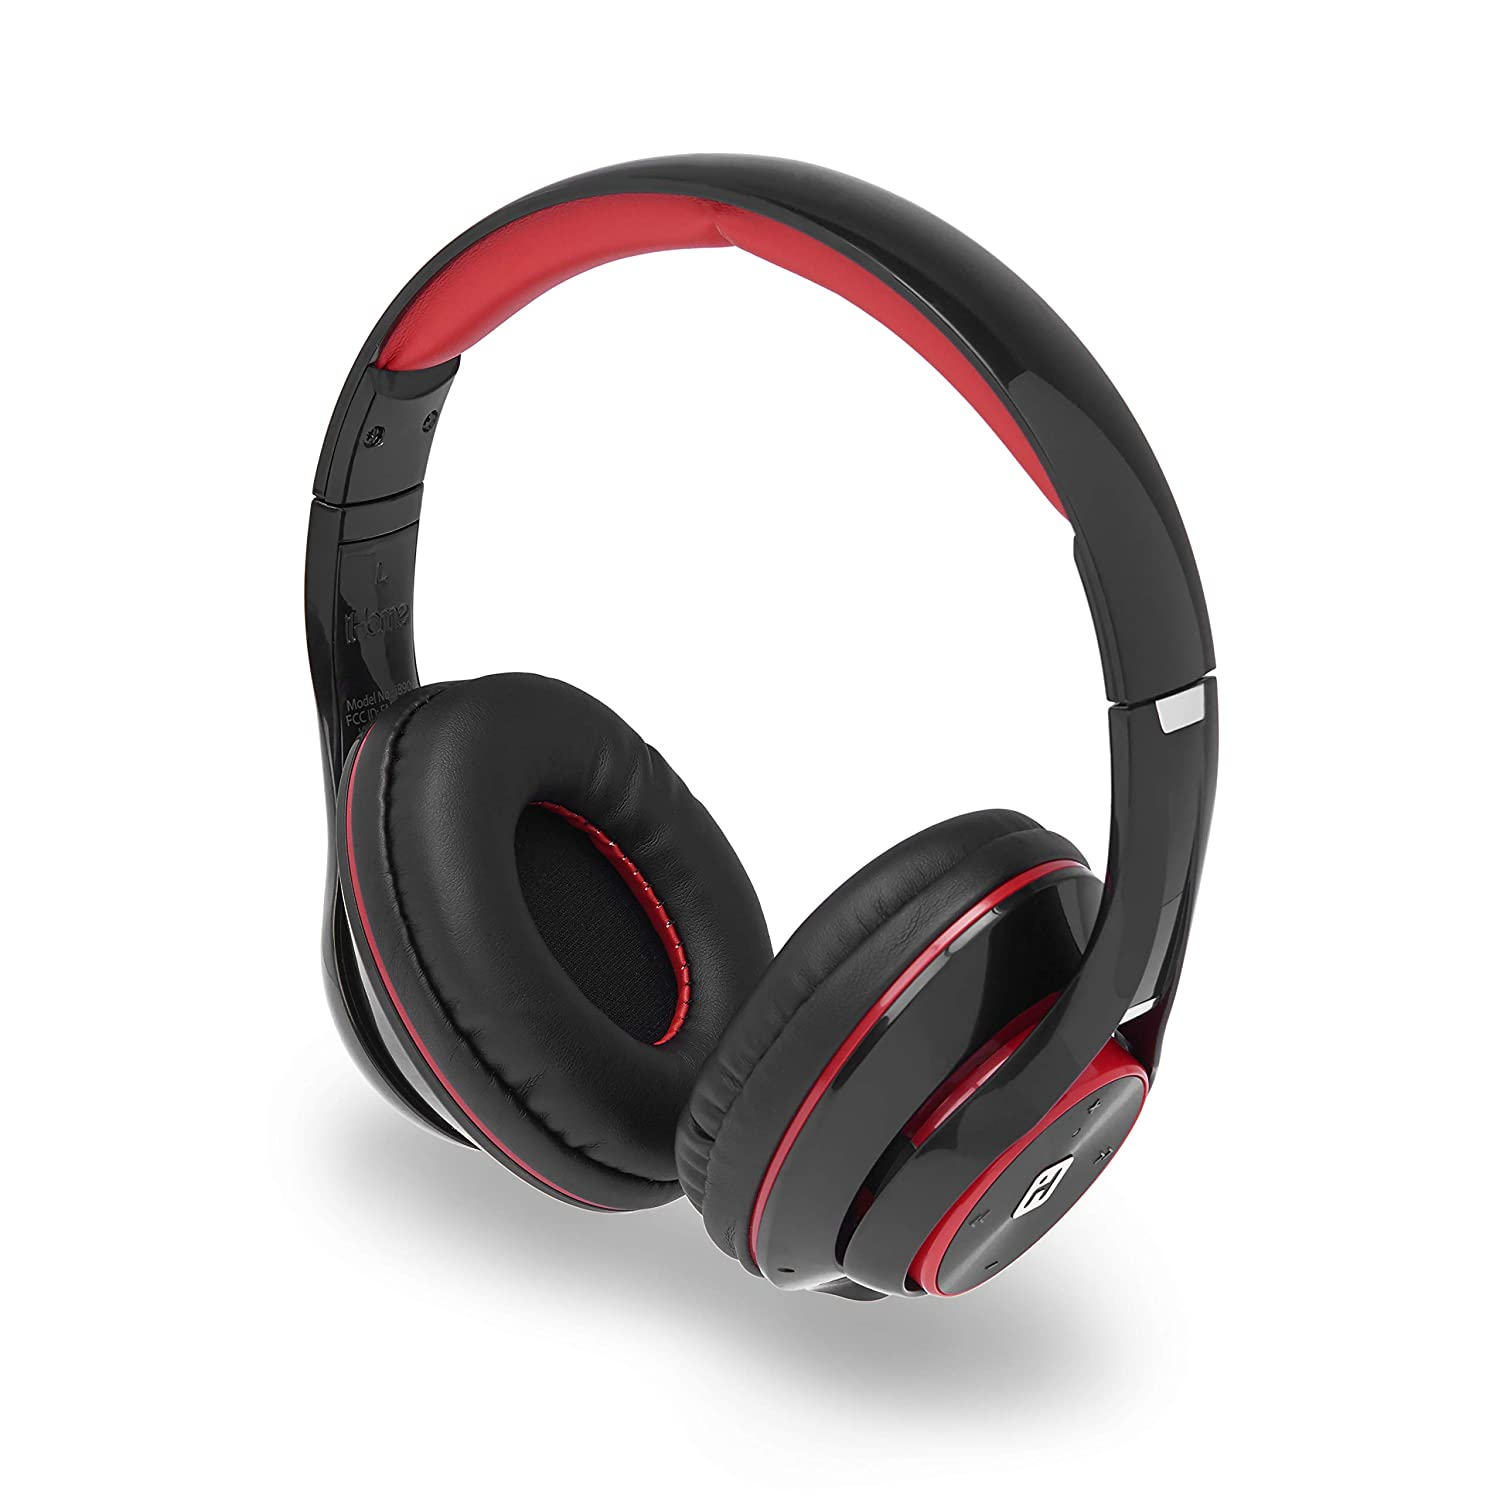 iHome Bluetooth Headphones with Microphone, Comfortable Over Ear with Extended Battery Life, Remote Control, Rich Detailed Sound Travel Work, Black Red IB90